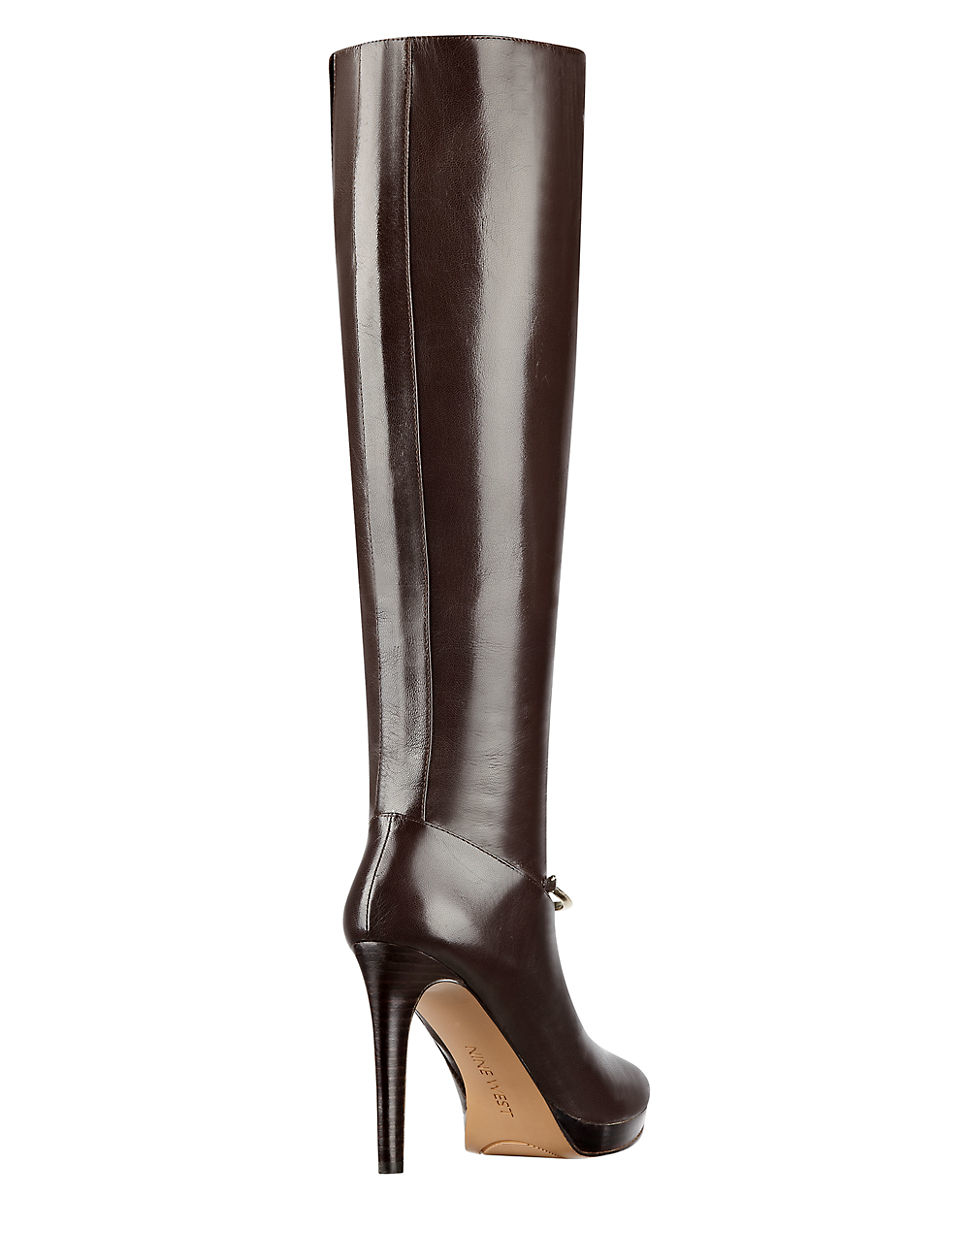 f98b822e06a9 Nine West Pearson Knee-high Platform Leather Boots in Brown - Lyst